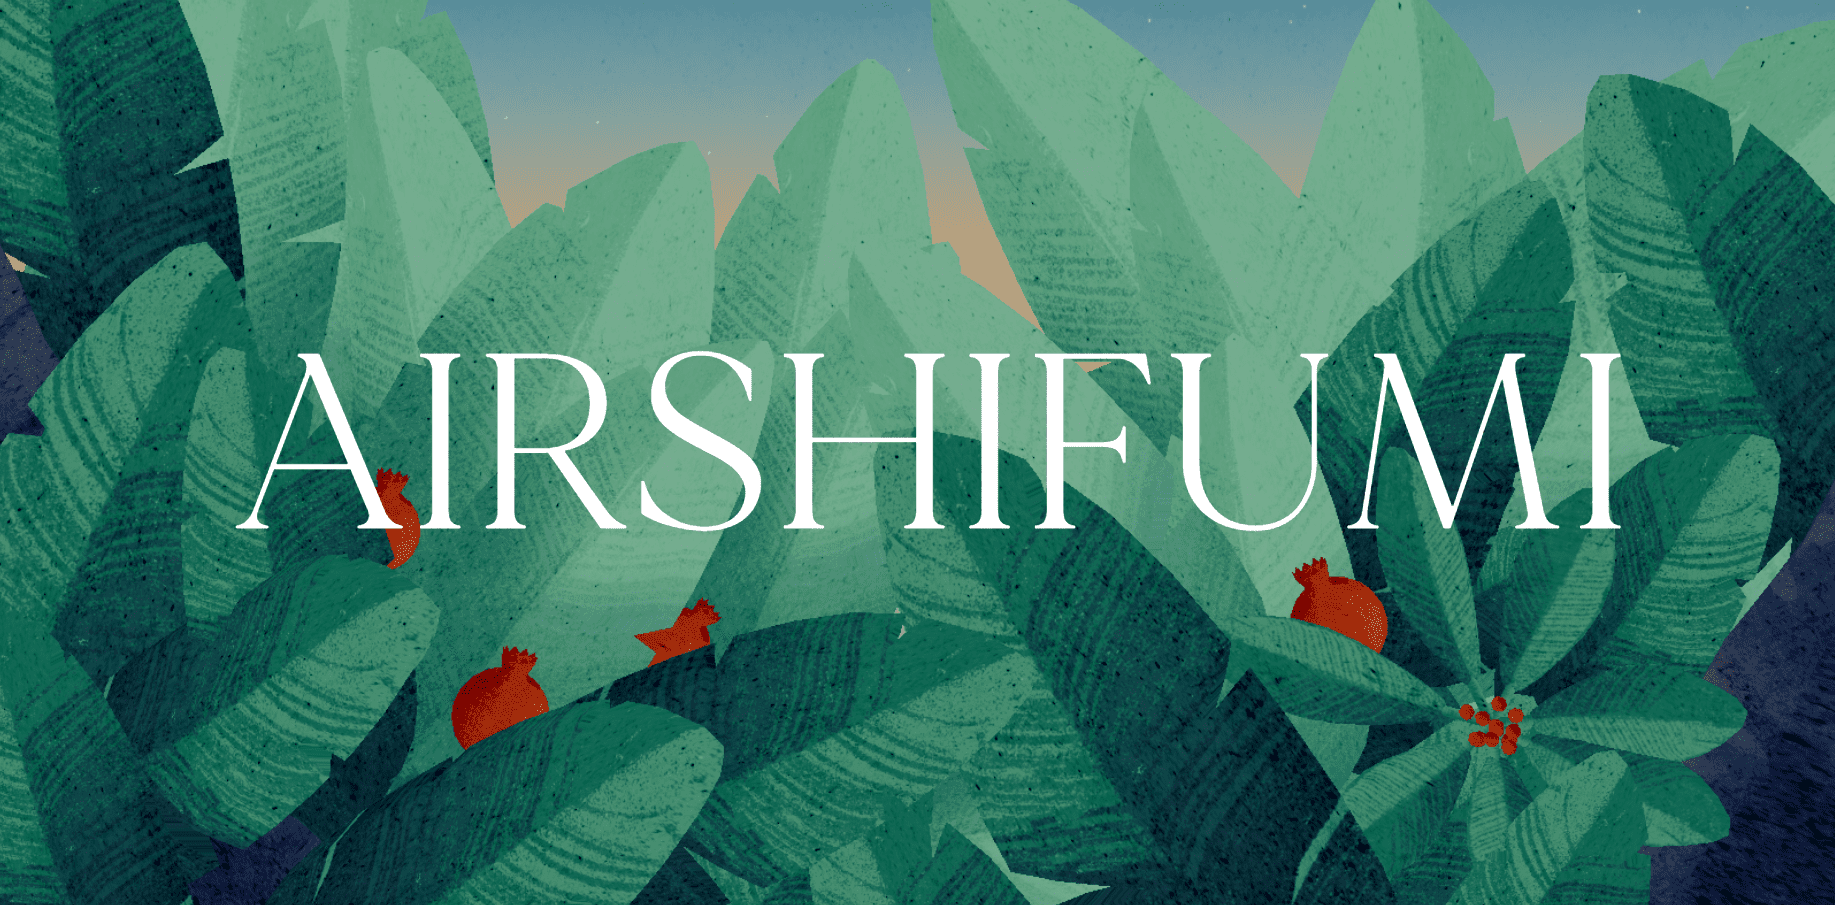 Best Agency Website for Airshifumi